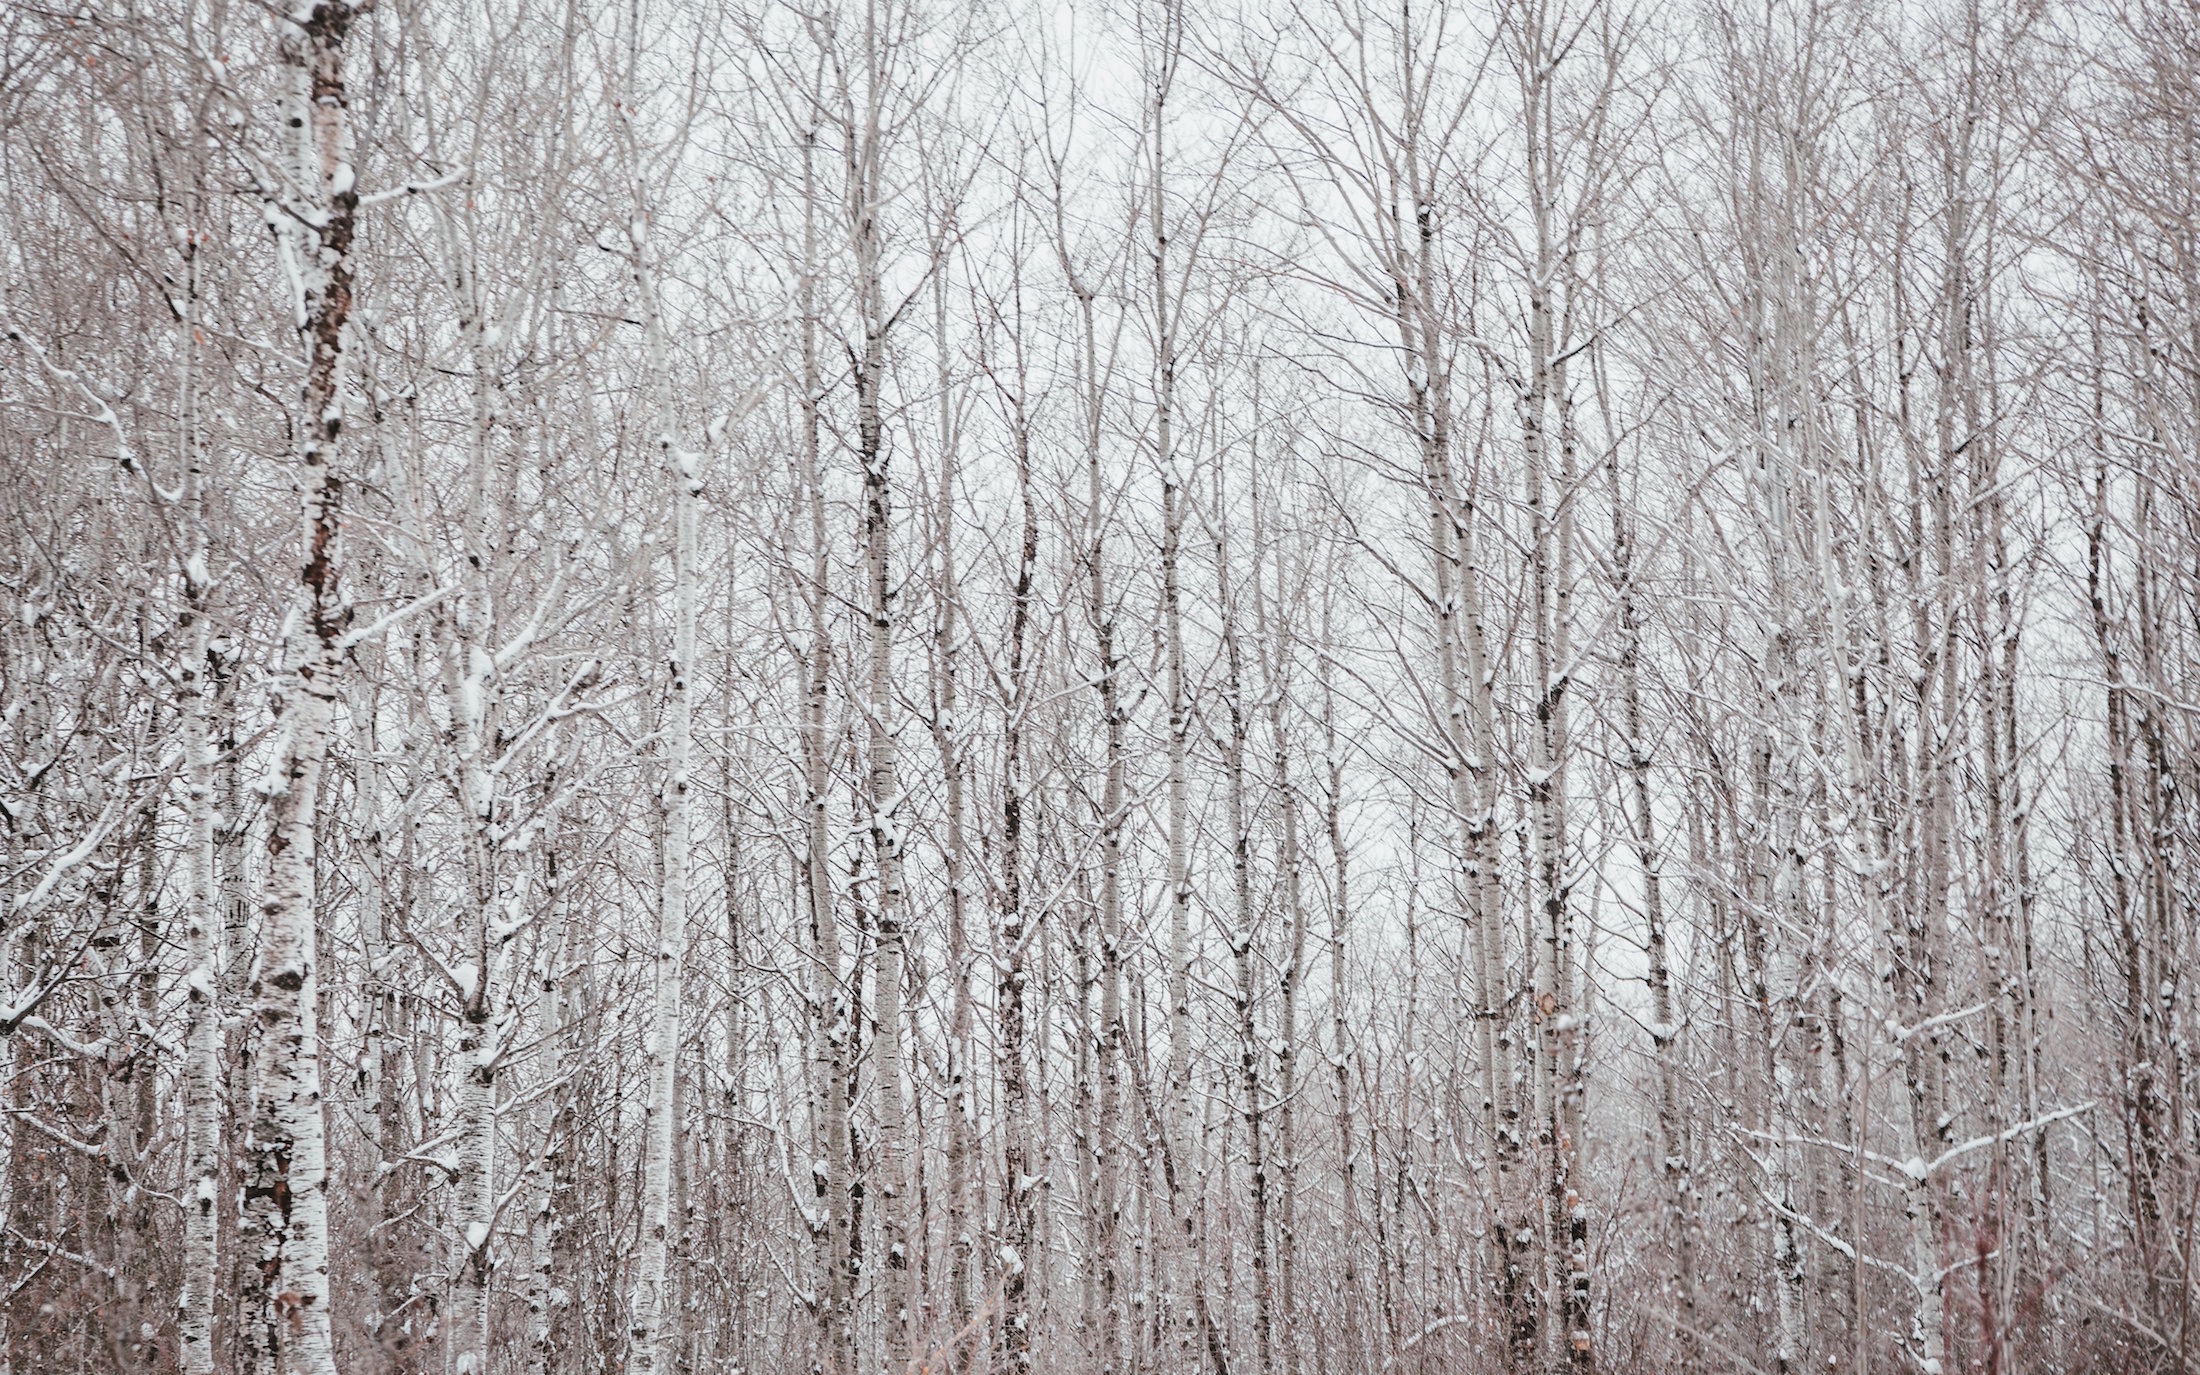 a-black-and-white-polar-forest-against-a-white-winter-sky.jpg